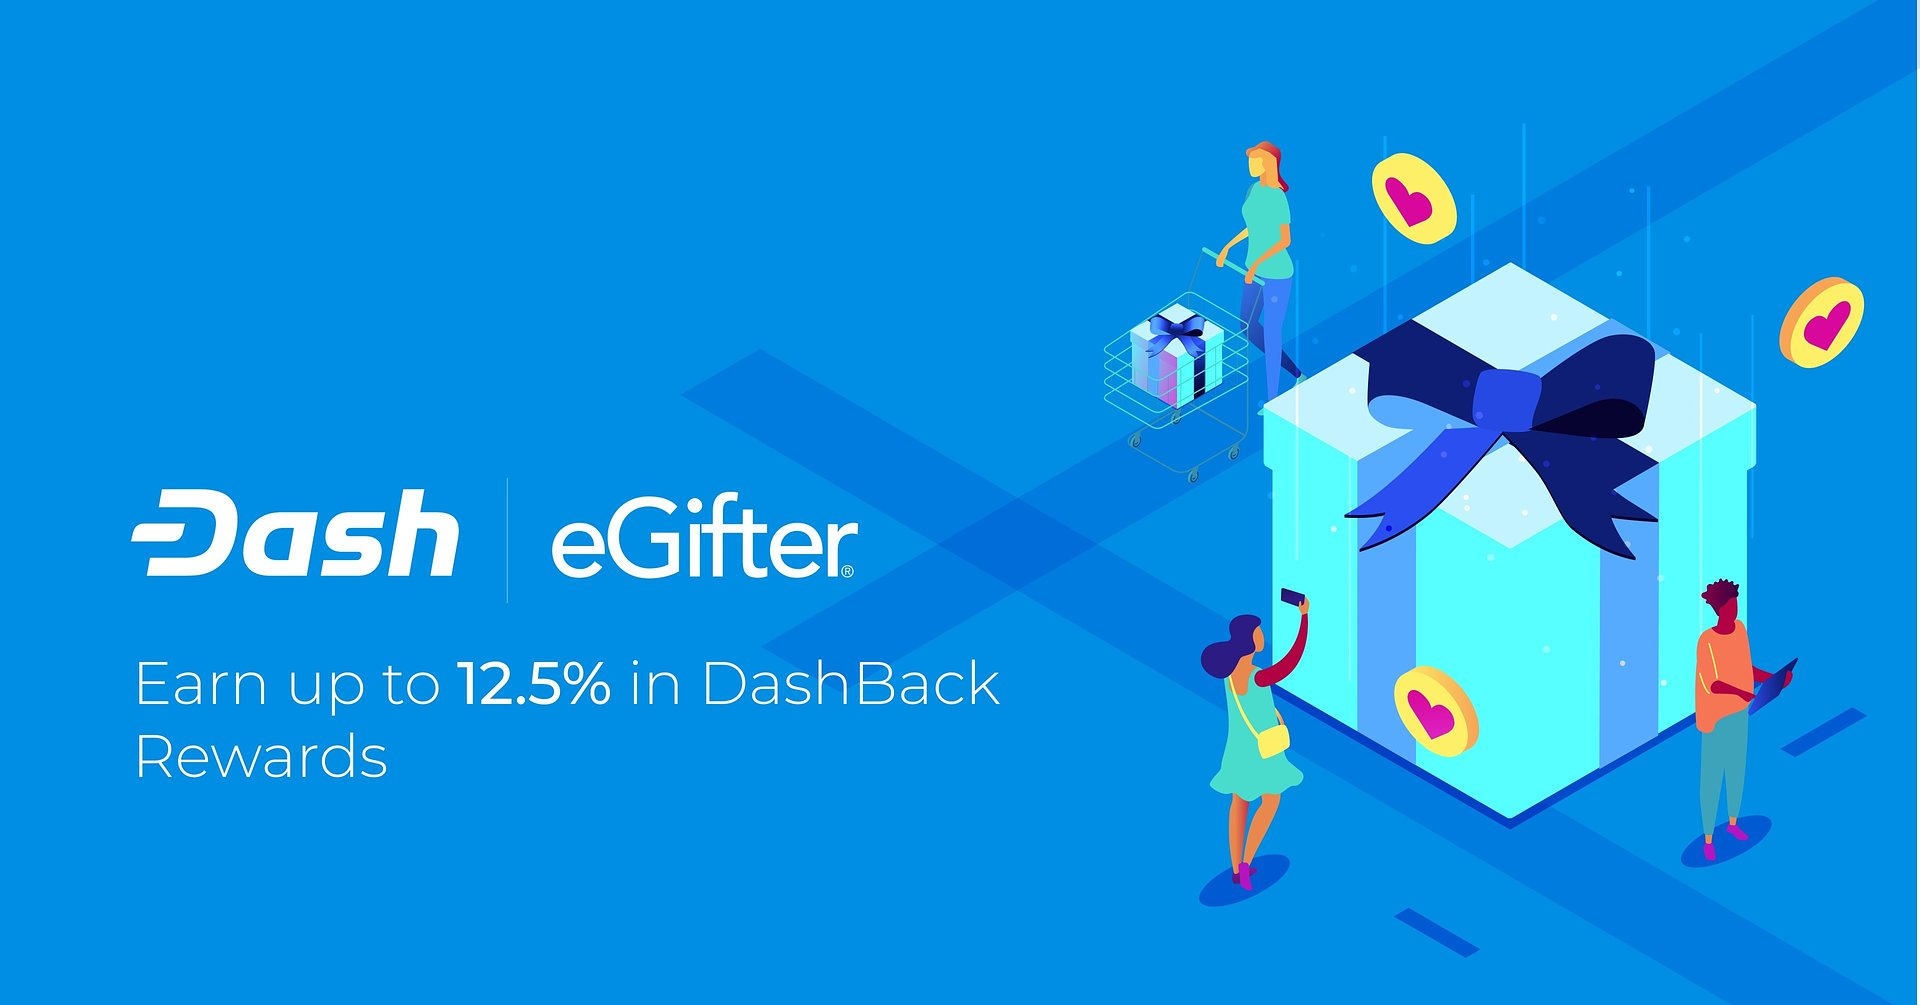 Earn up to 12.5% in Rewards On Gift Card Marketplace eGifter With Dash-Back